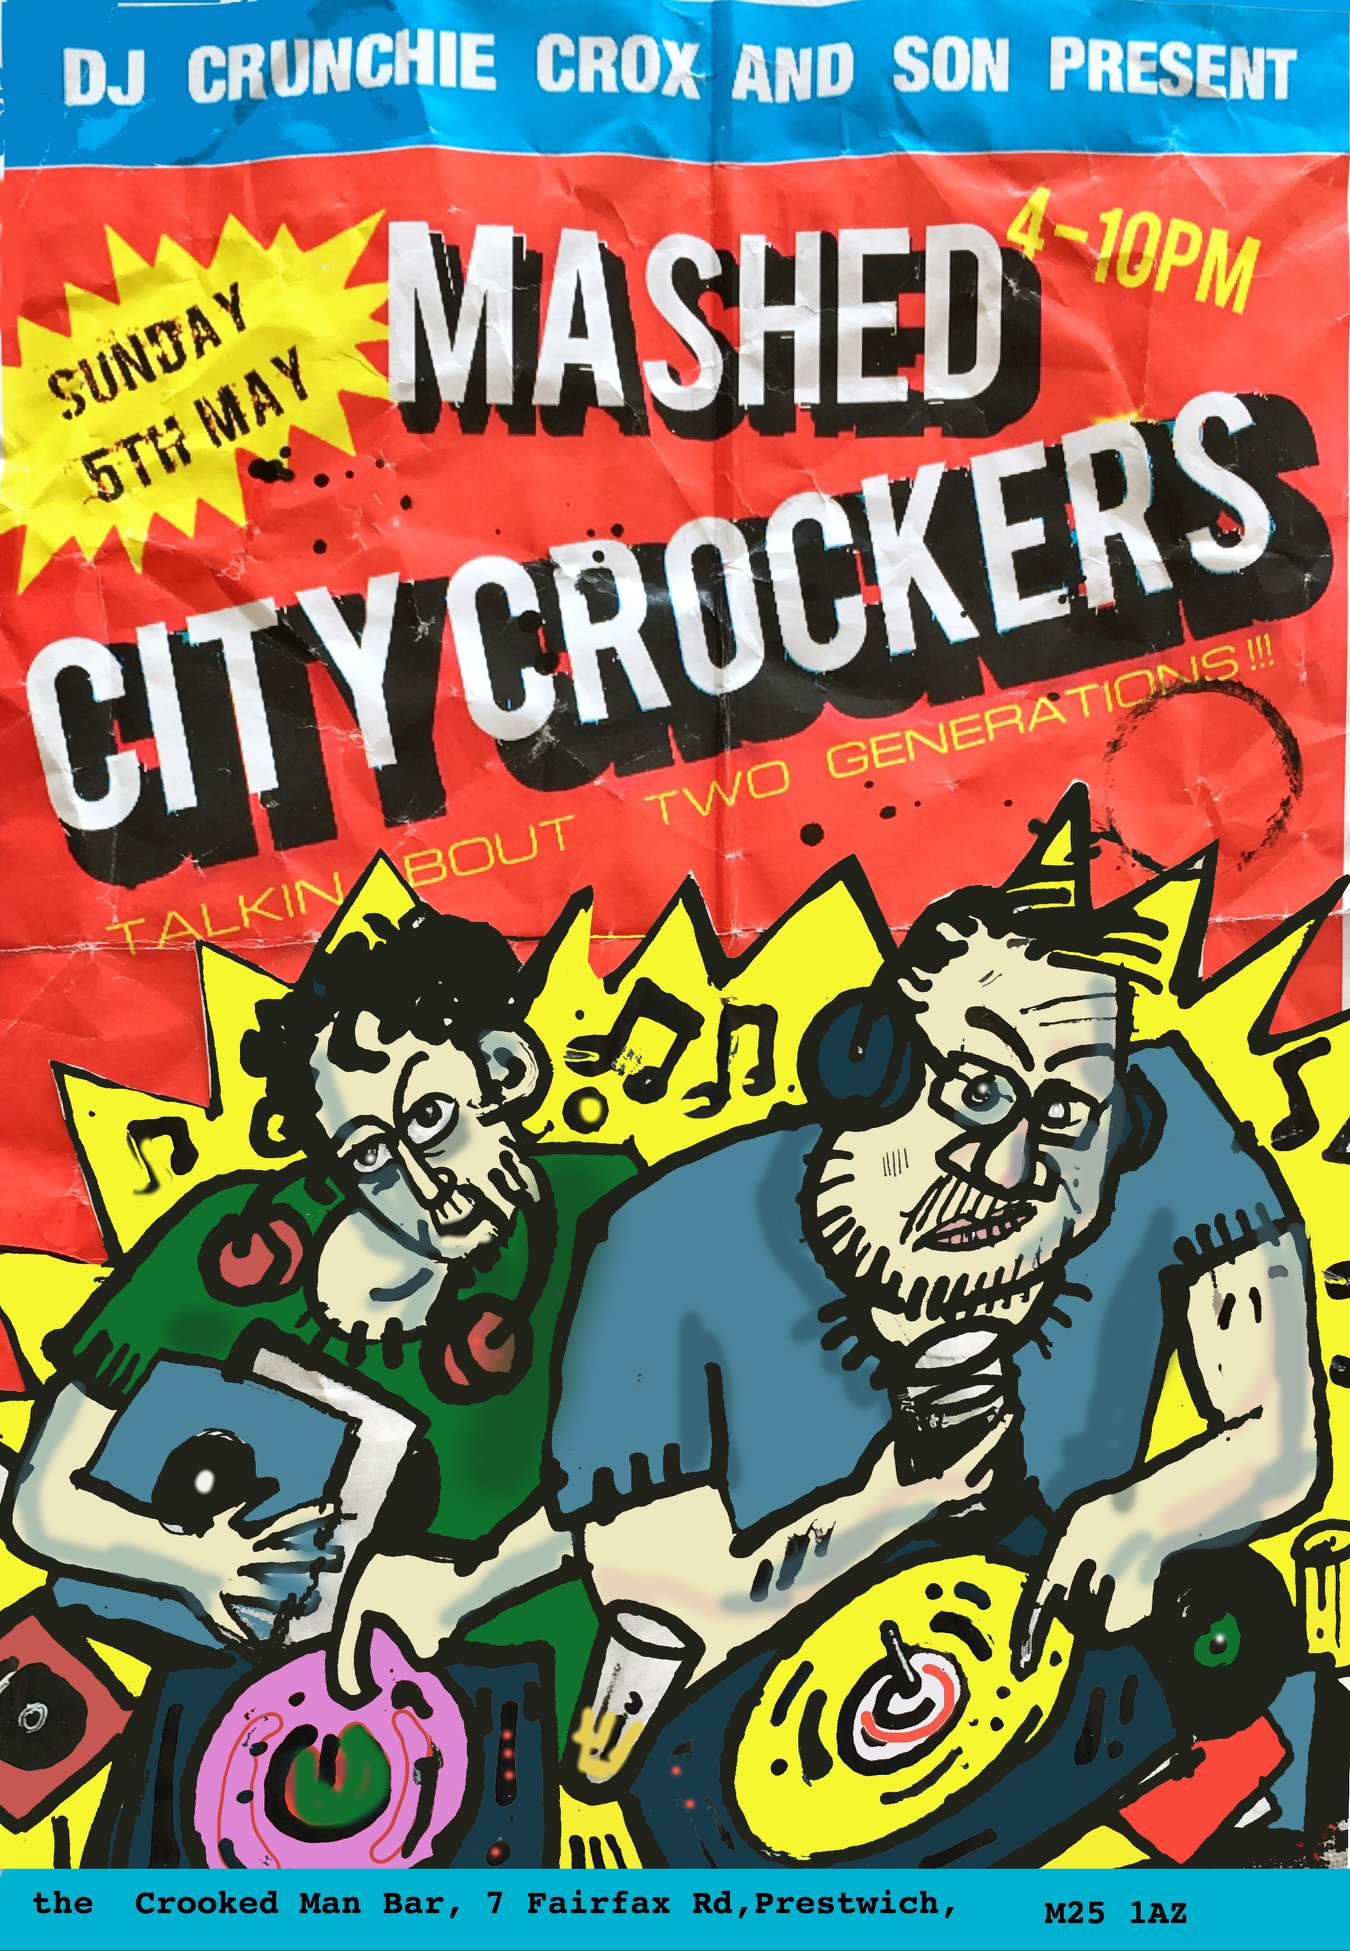 Mashed City Crockers Poster by Lee Crocker (2019)